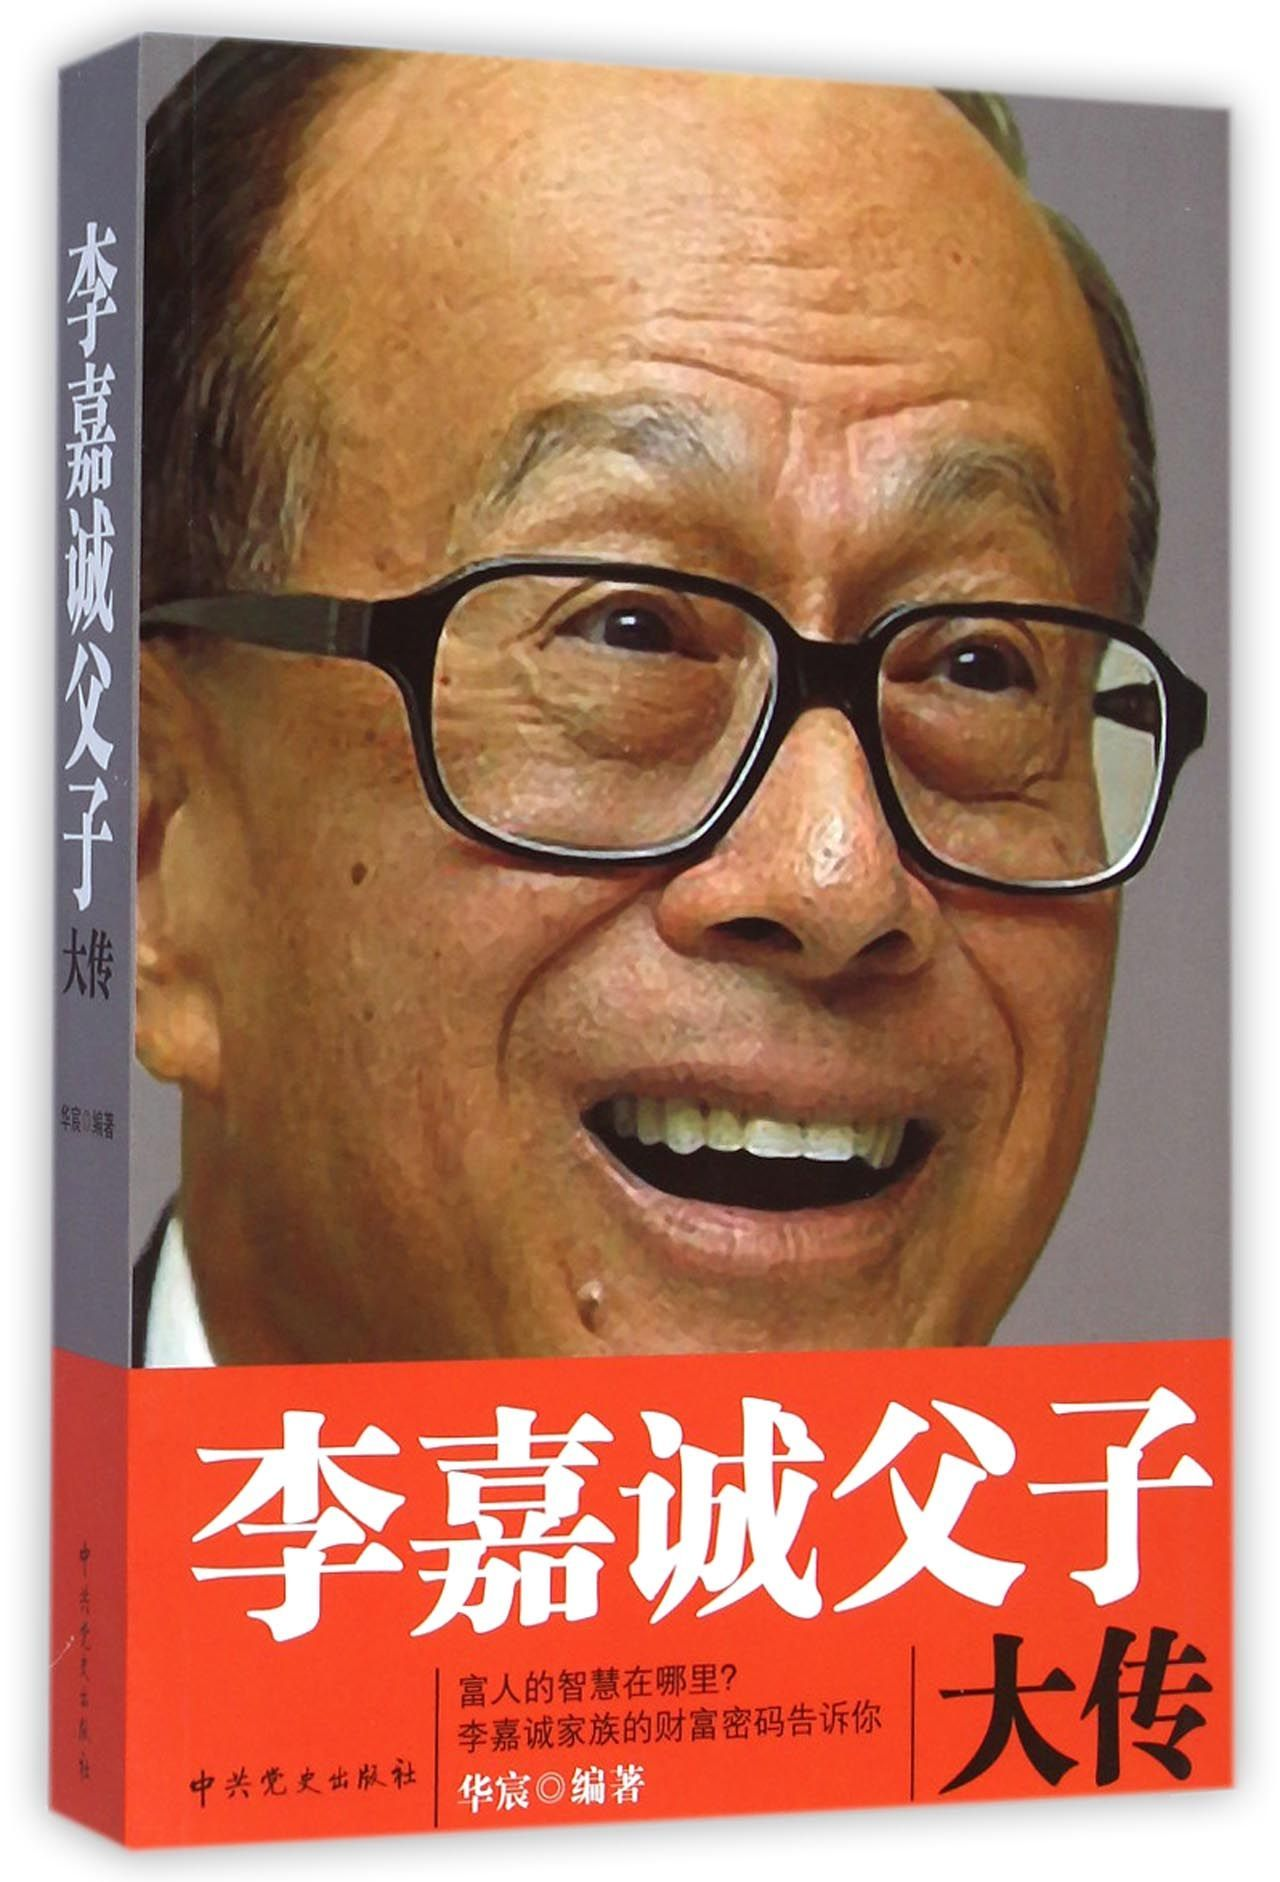 The Overall Biographies of Li Jiacheng and His Sons 李嘉诚父子大传  by  Hua Chen 华宸